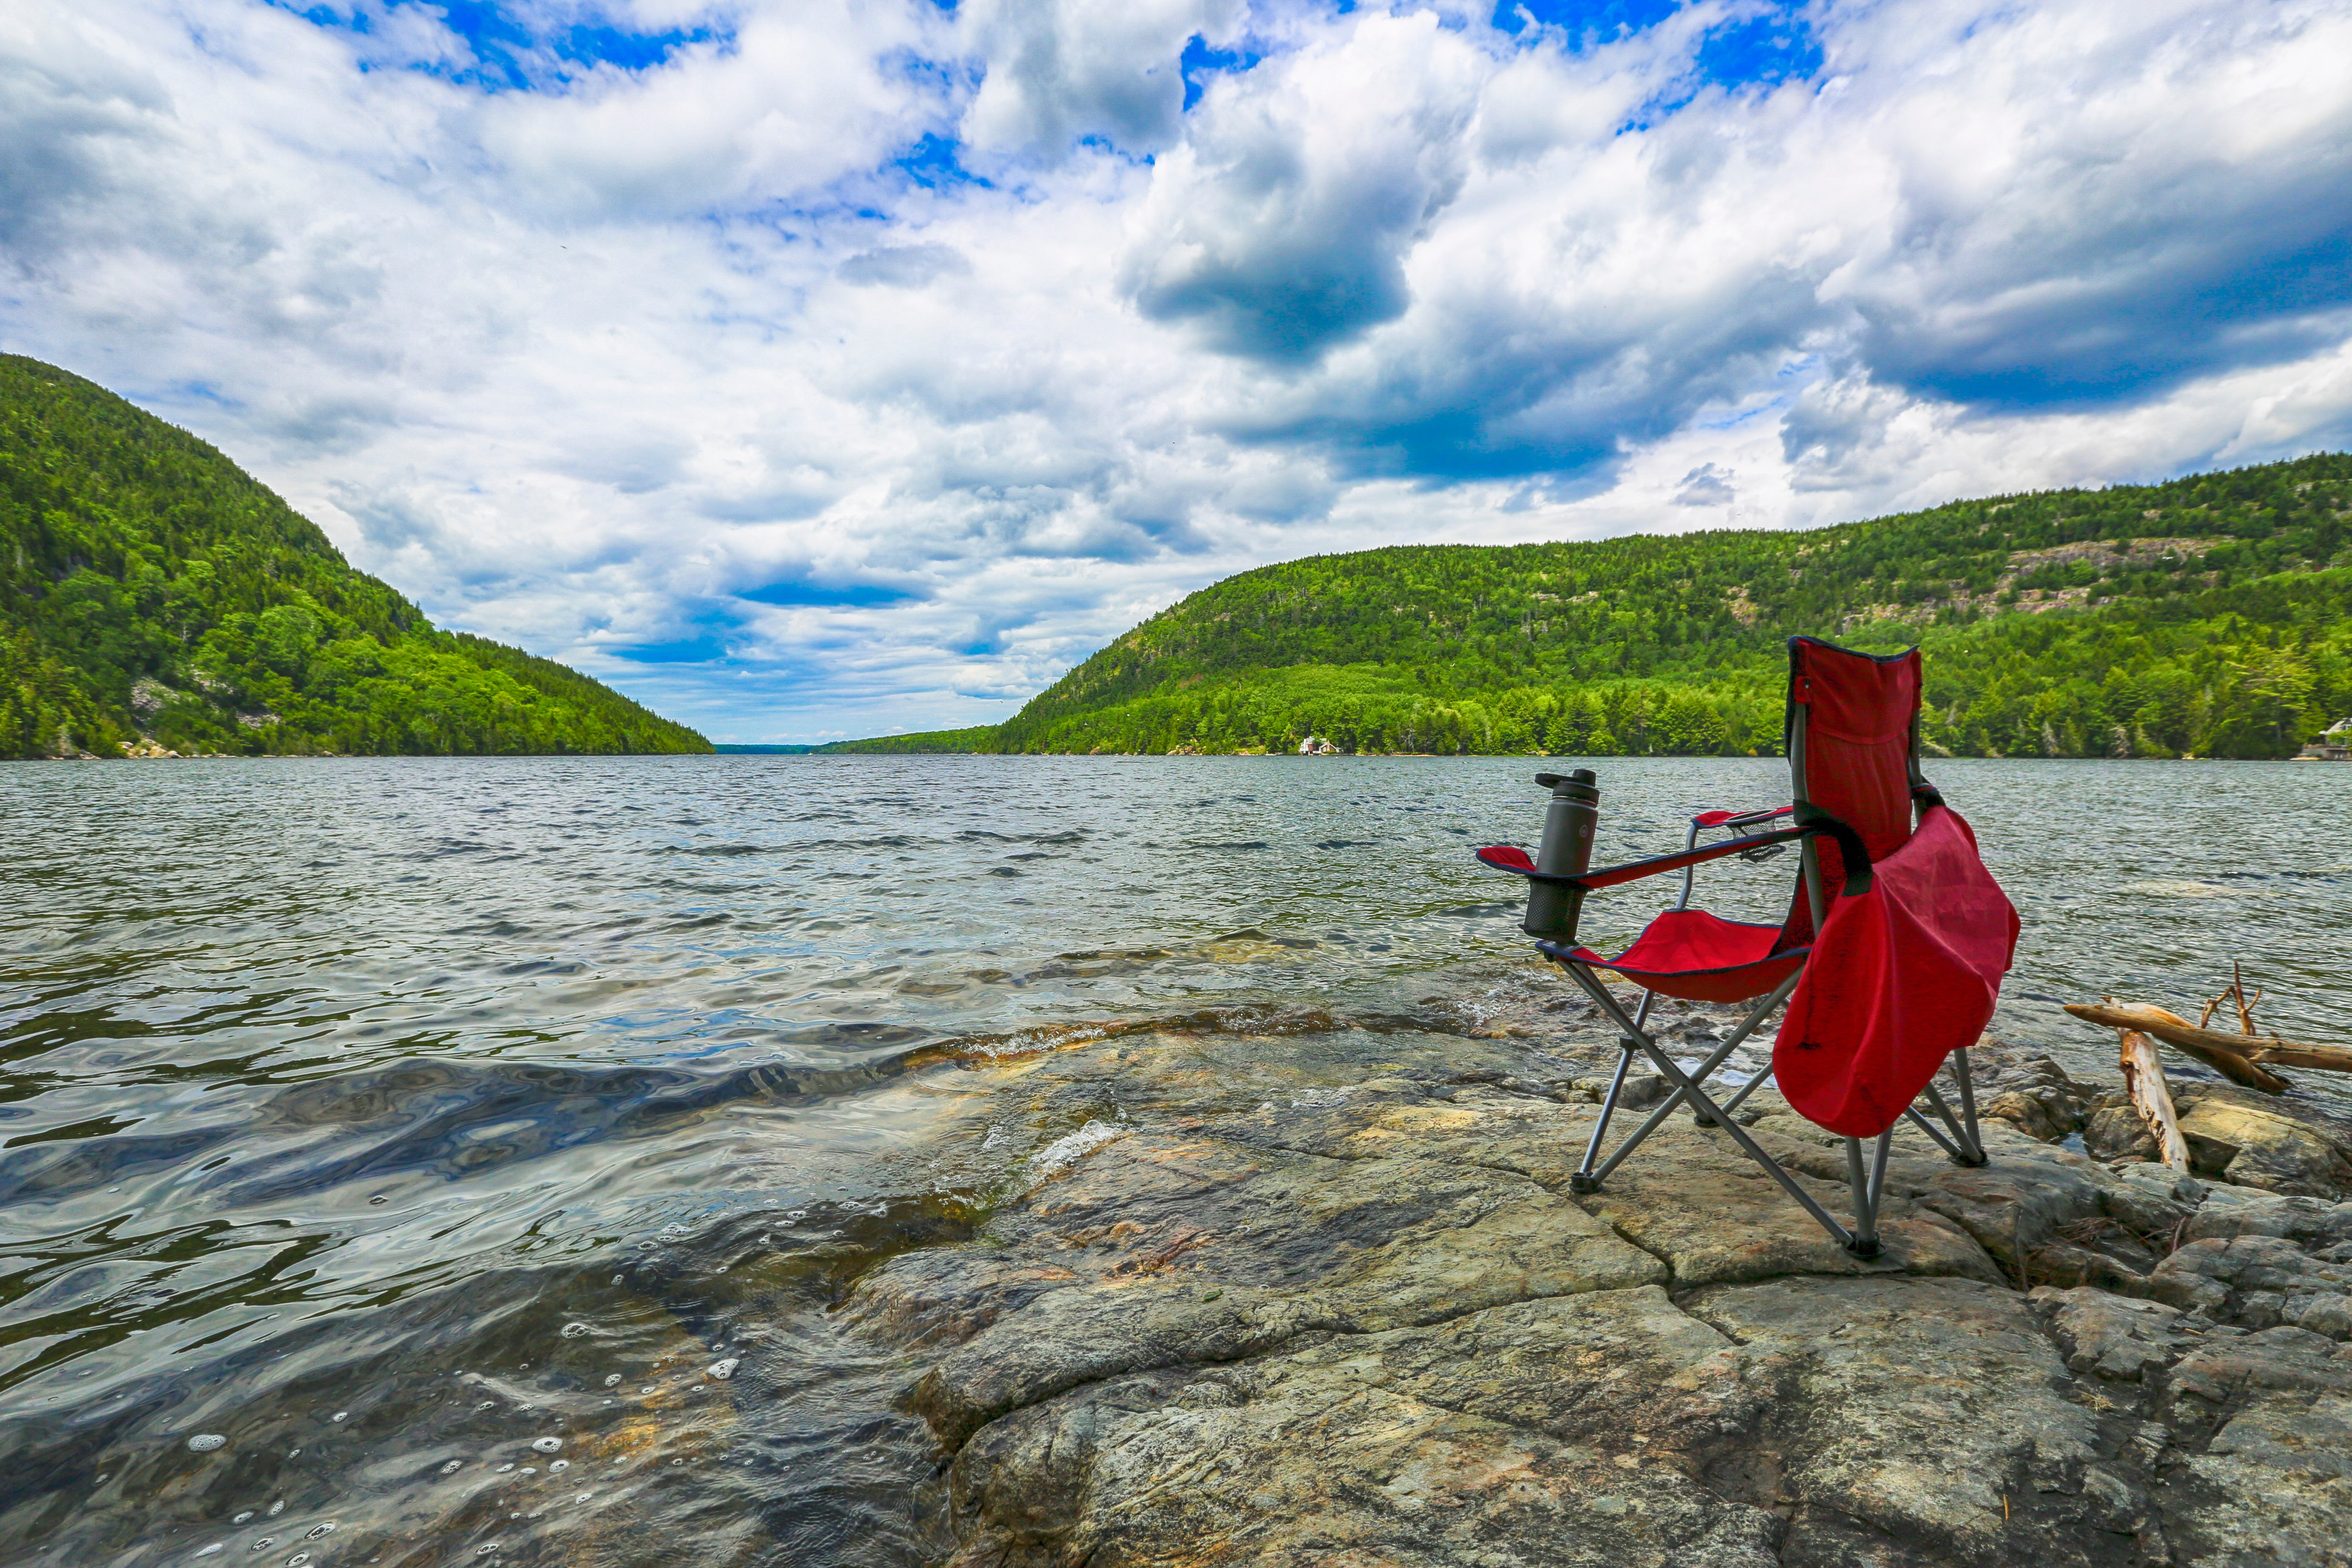 A red folding chair positioned in front of a lake.